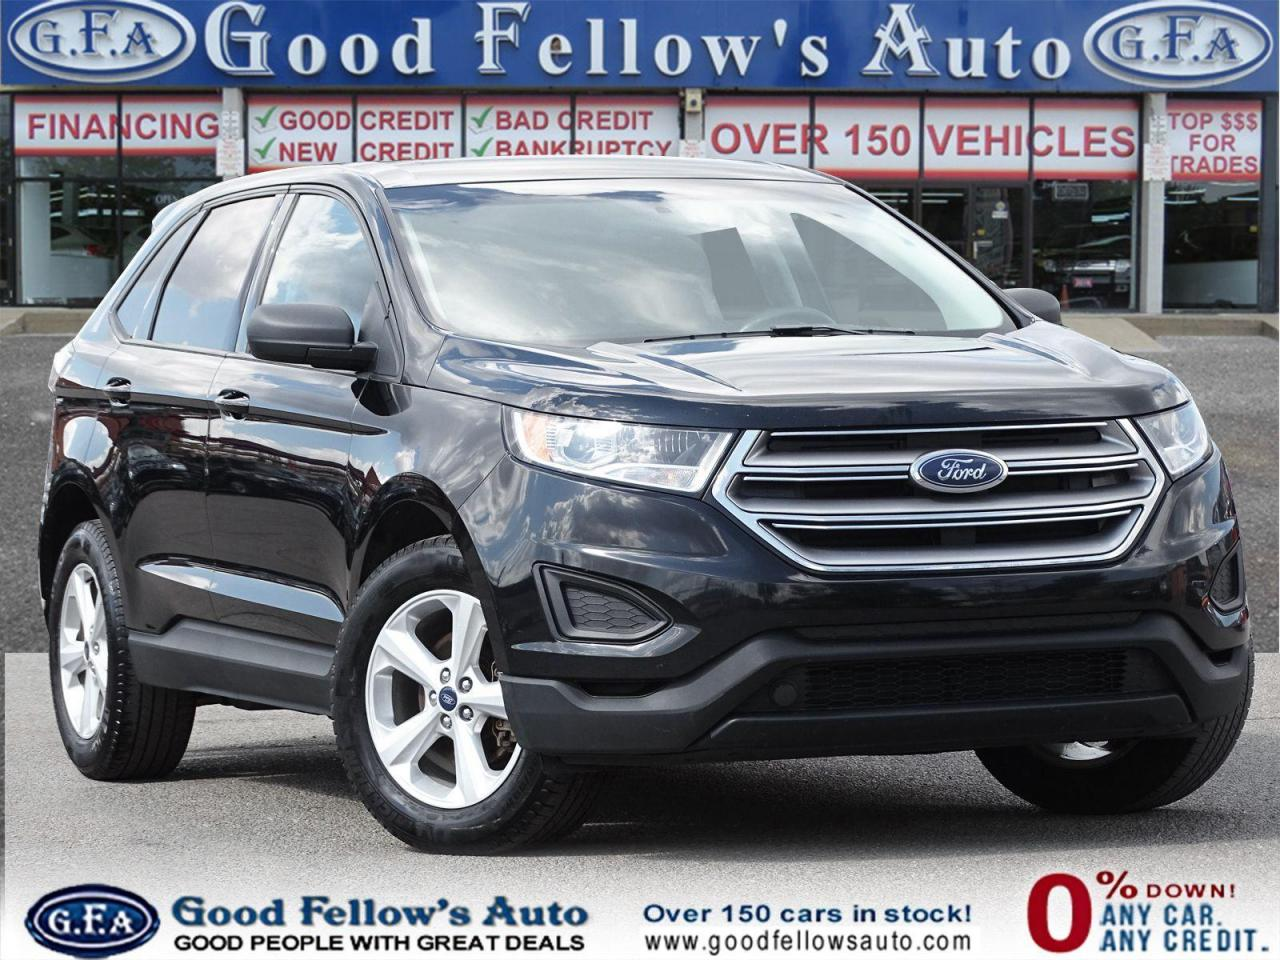 used 2017 Ford Edge car, priced at $14,400